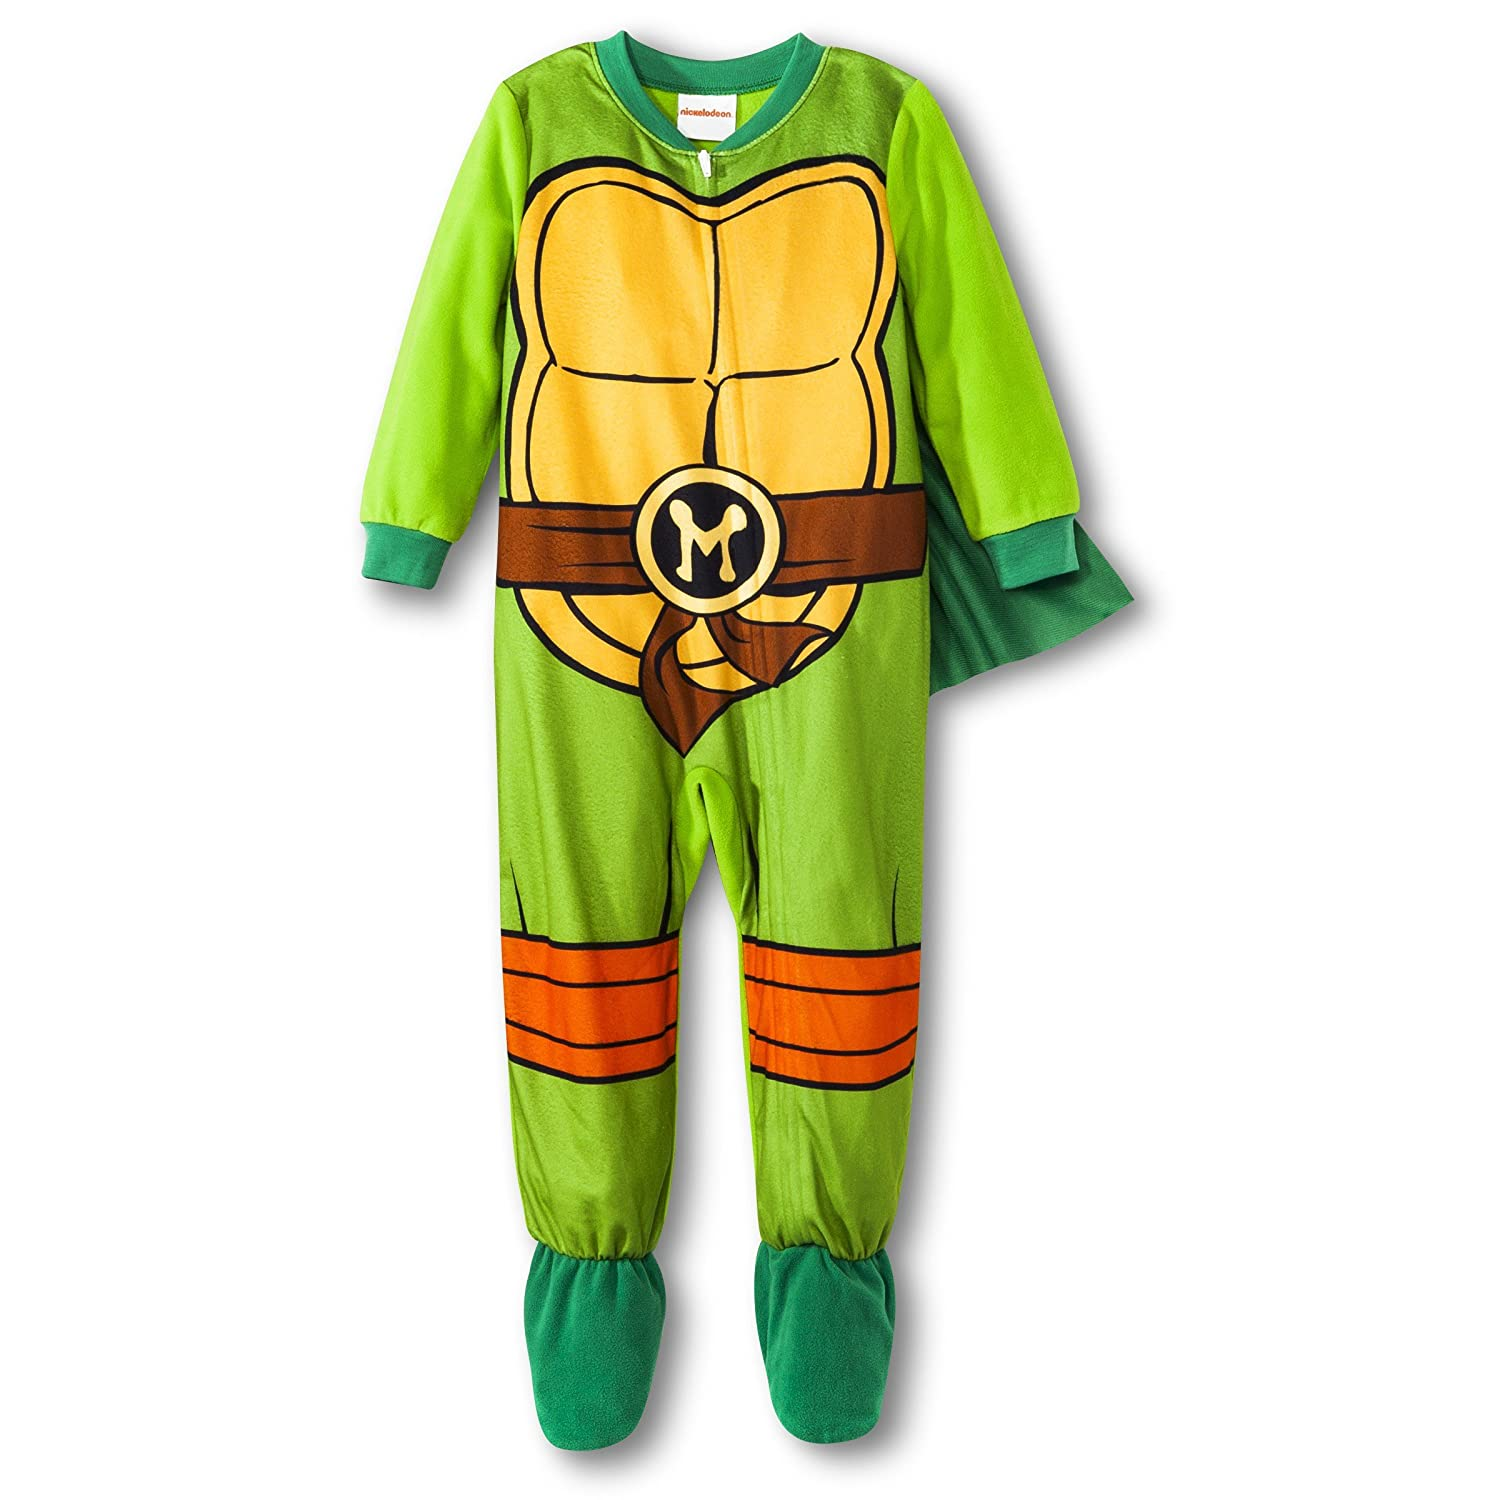 Teenage Mutant Ninja Turtles Little Boy Footed Sleeper Pajama with Cape 5T